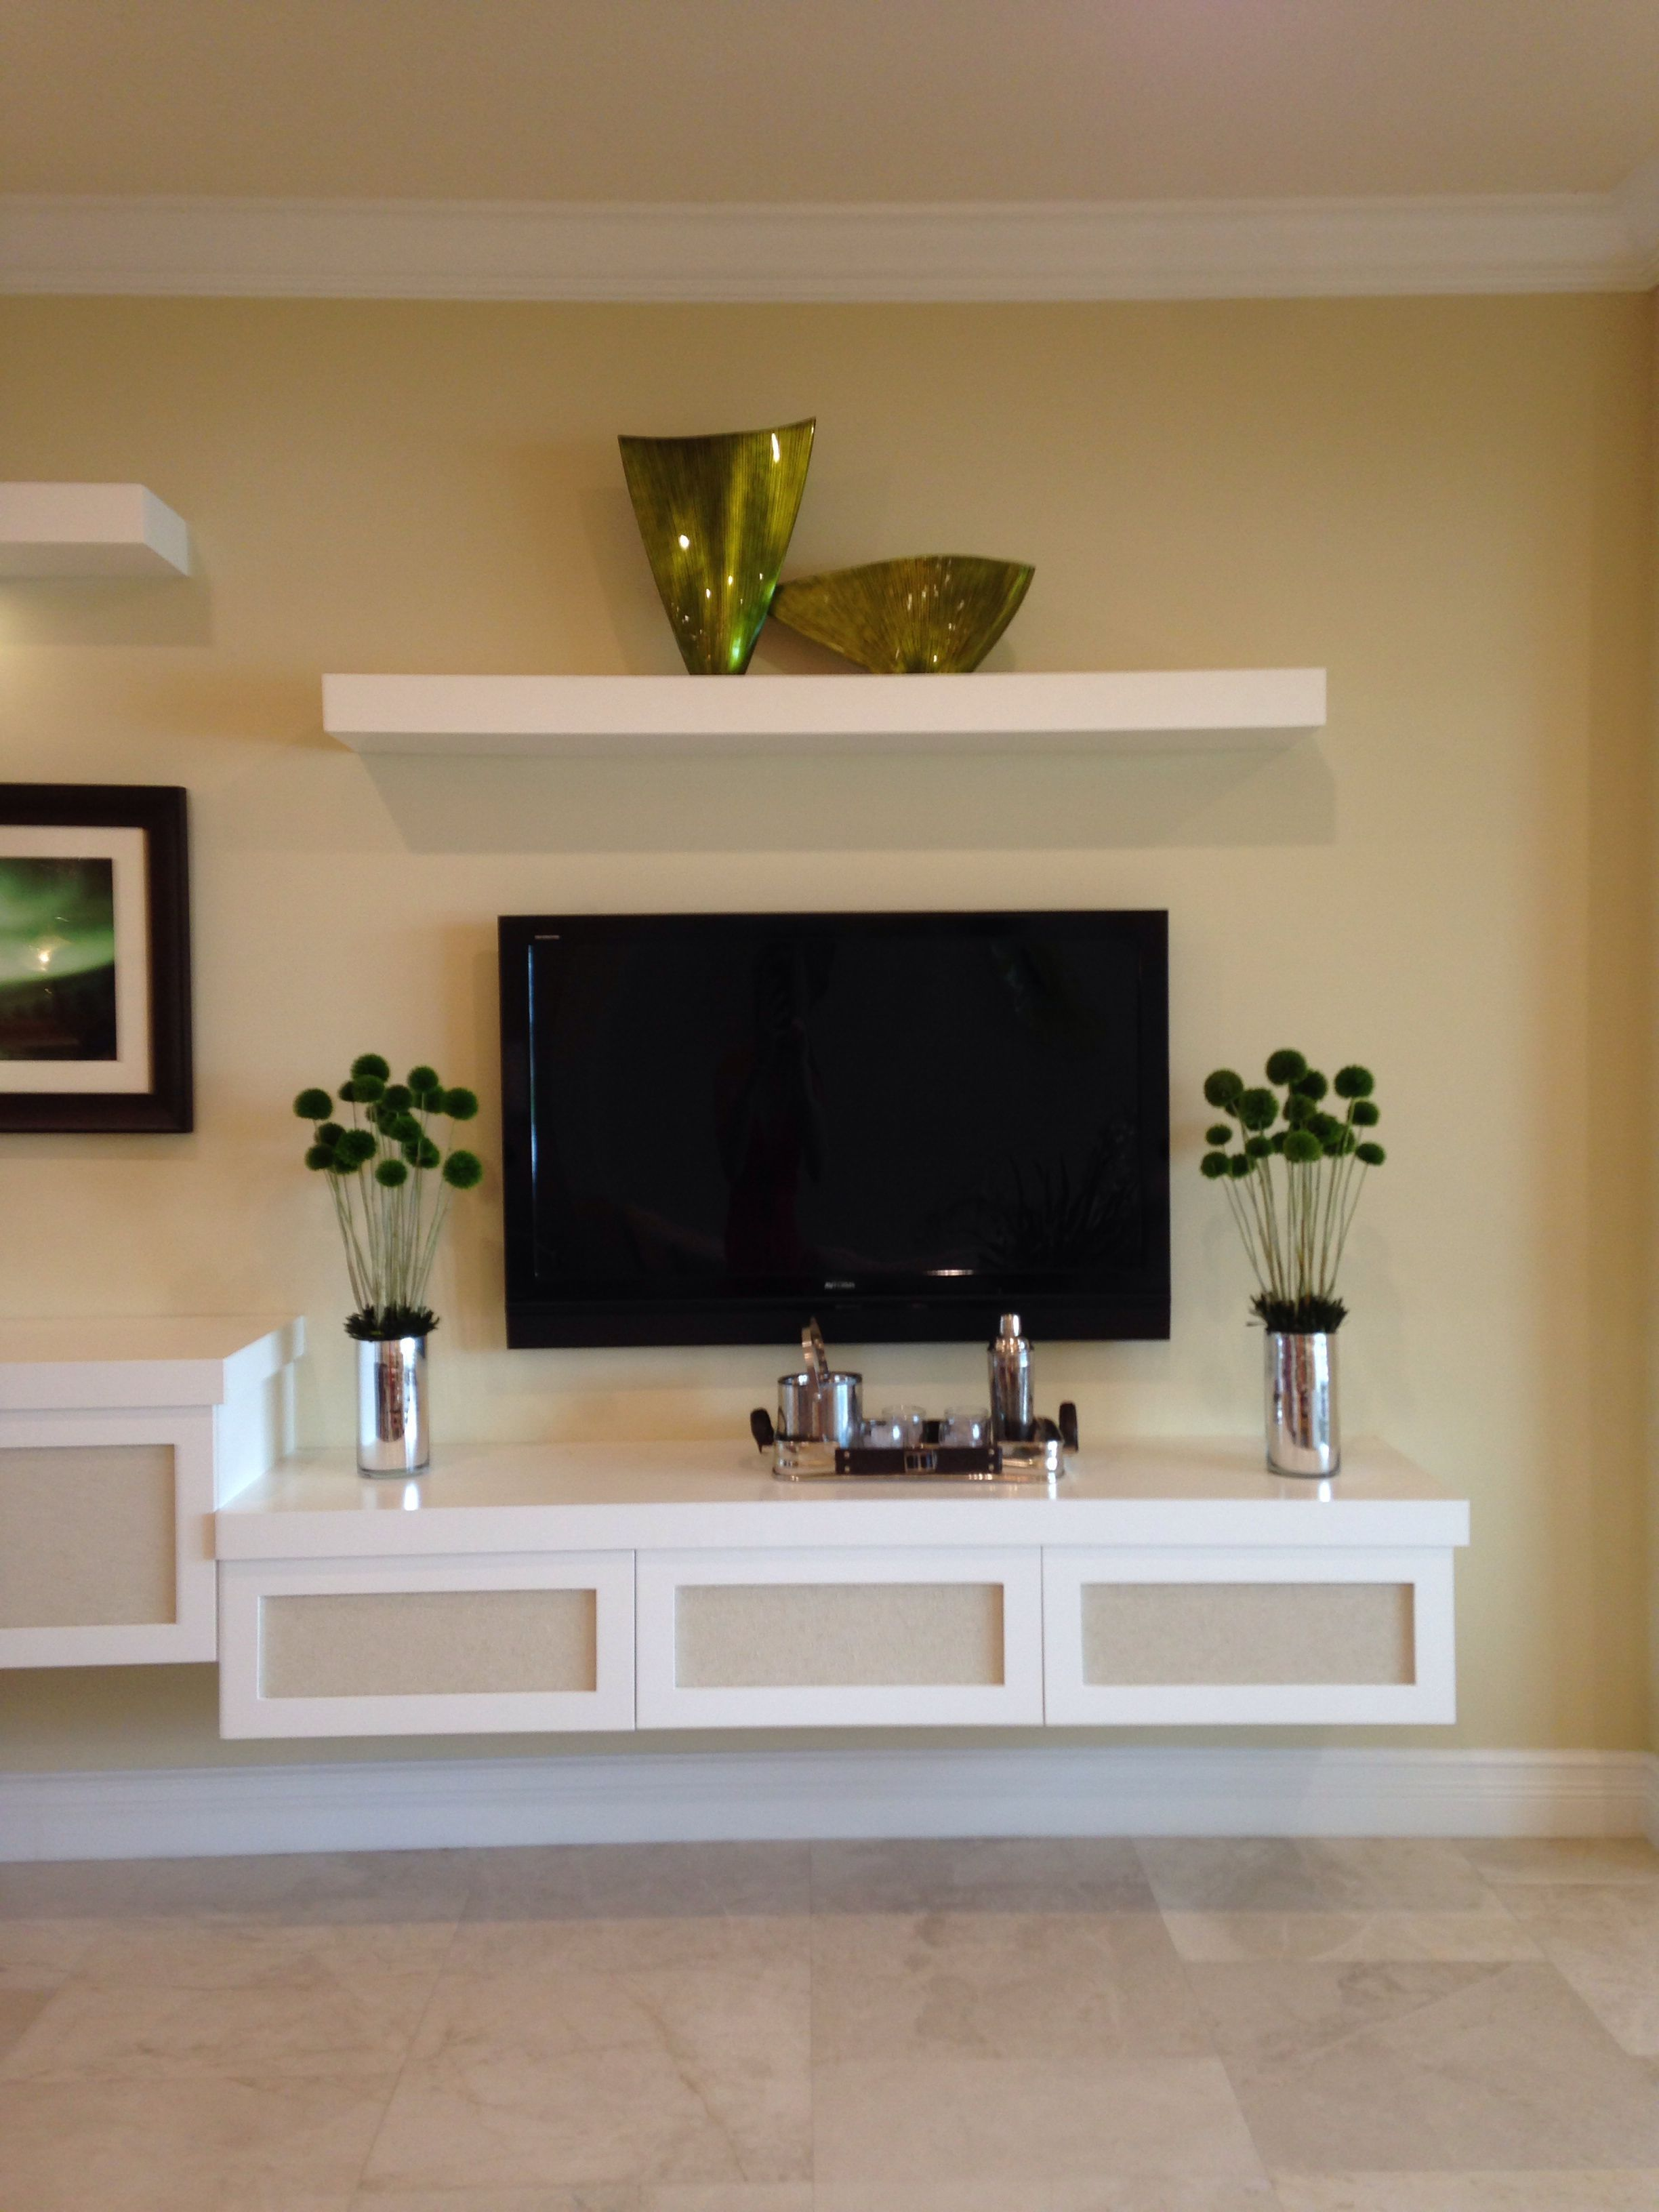 Stylish and practical modern tv stand designs are more numerous than